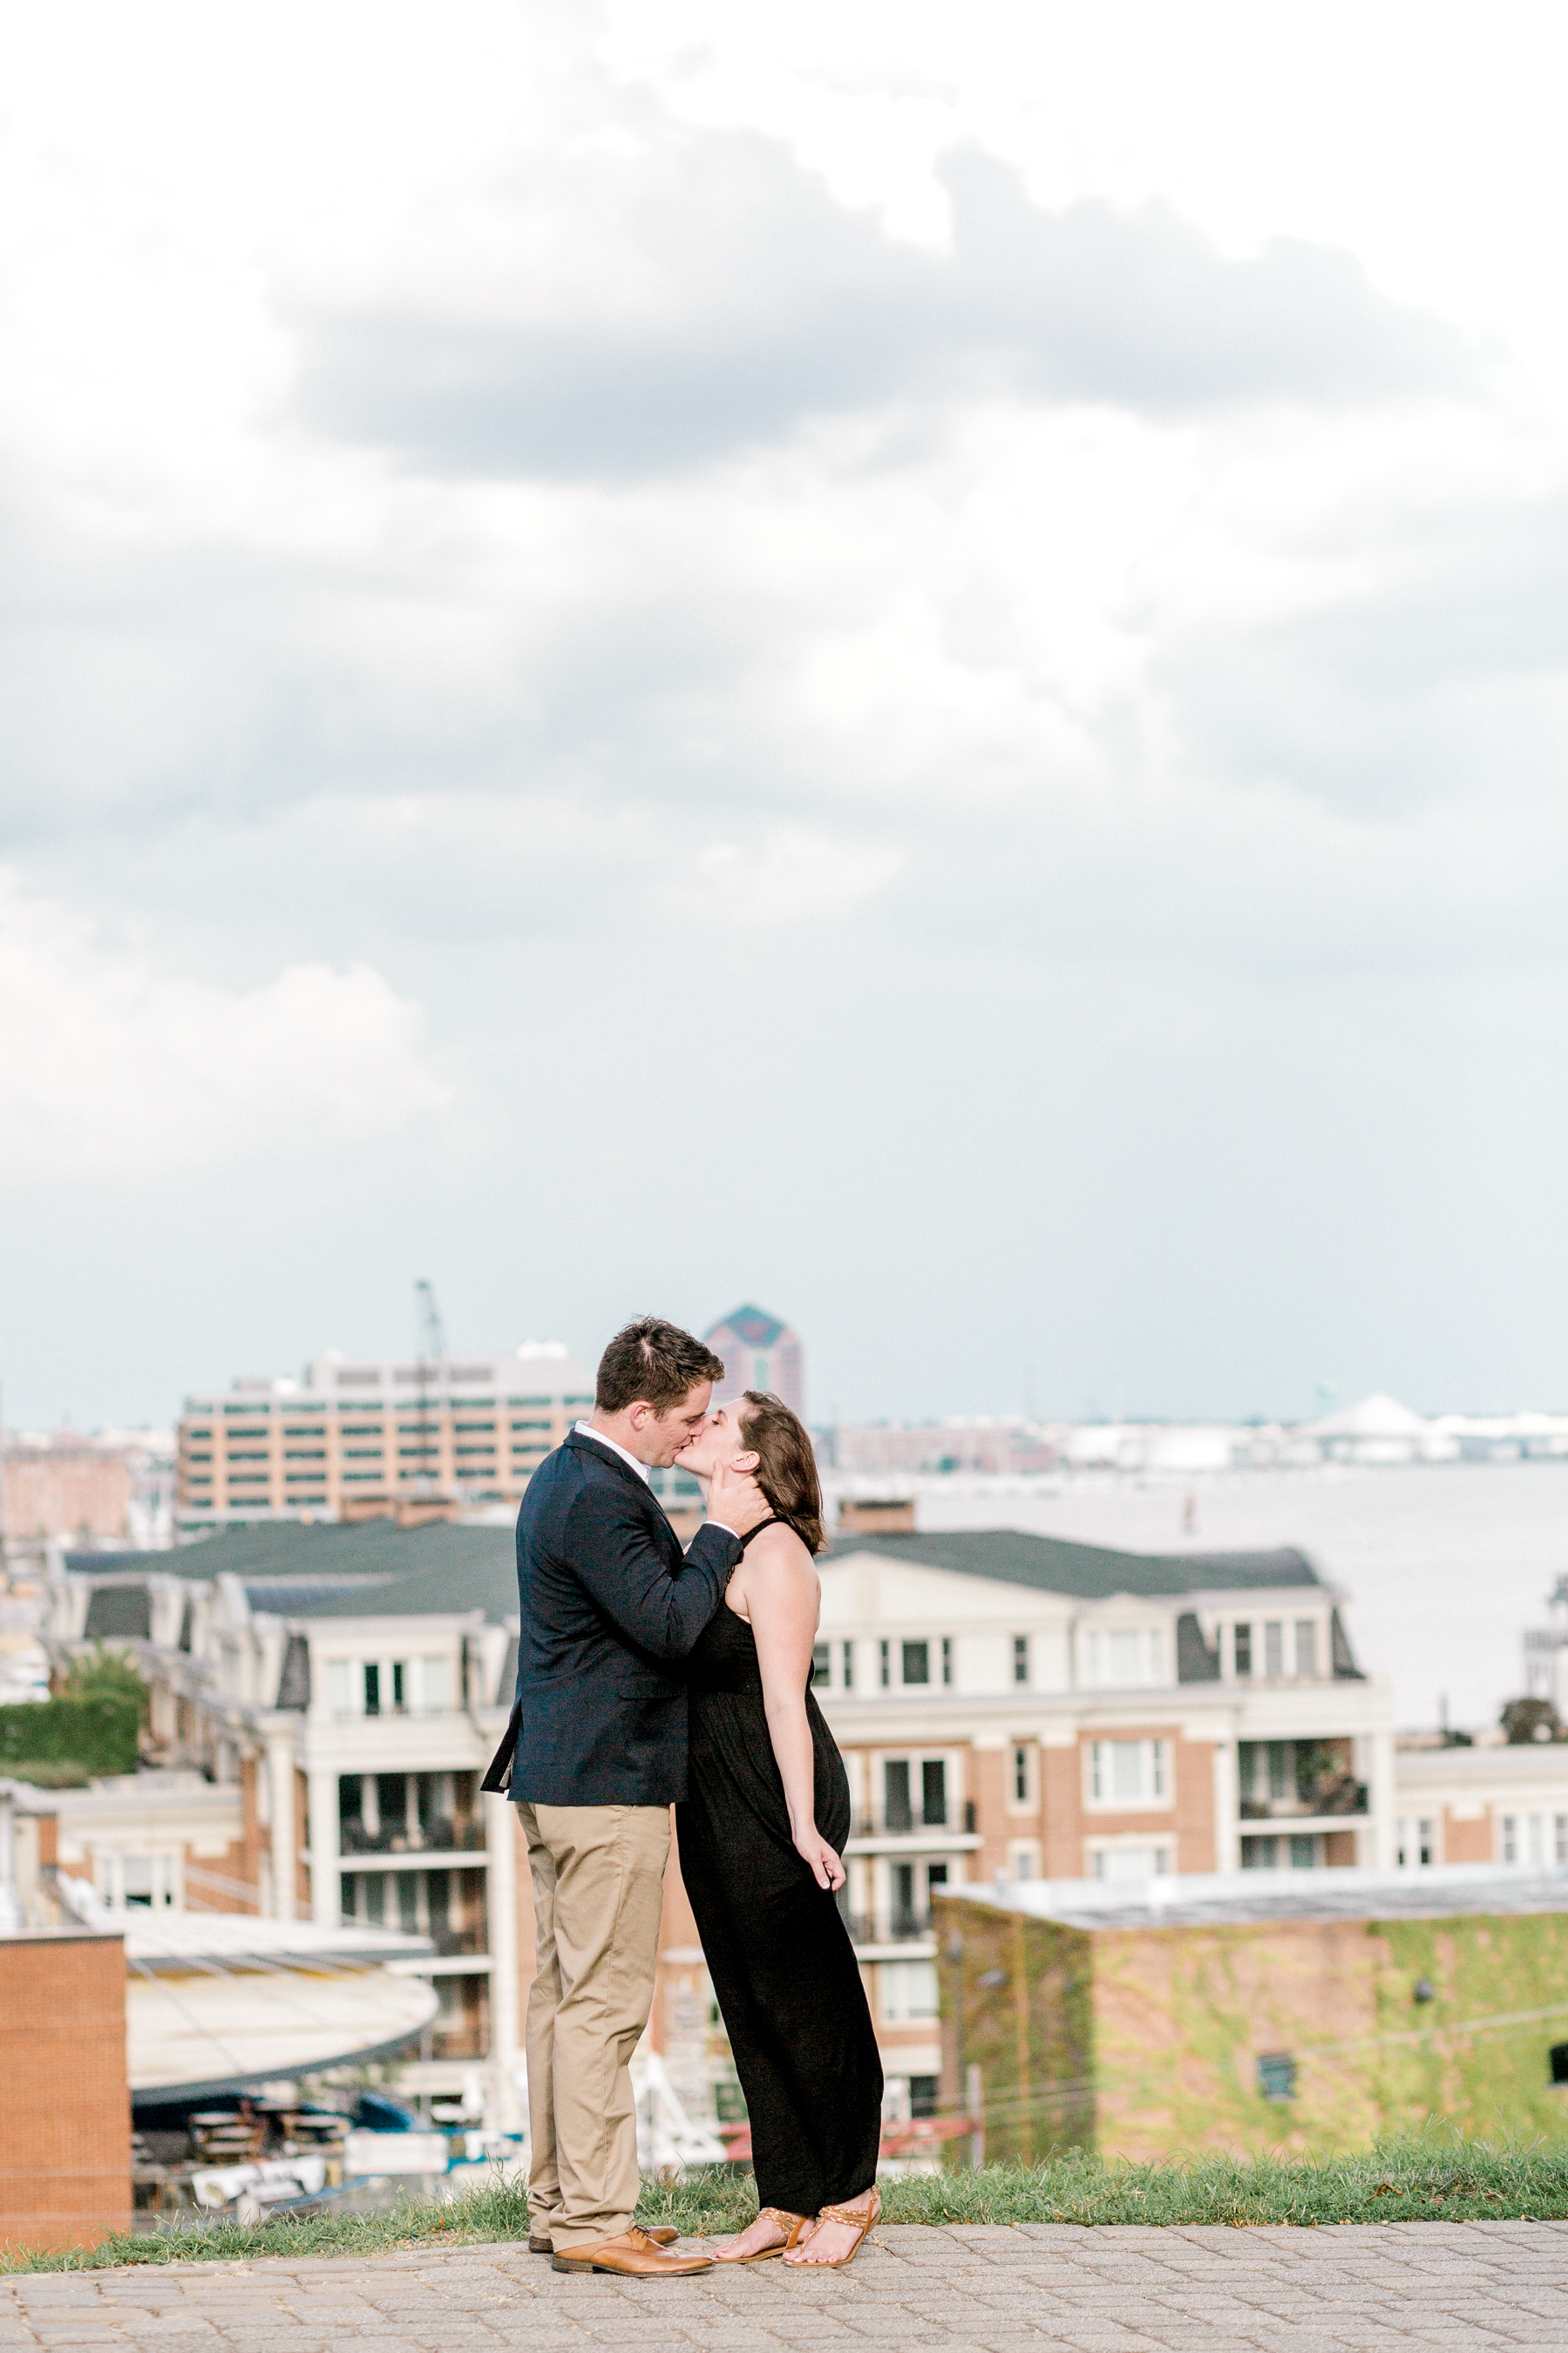 Baltimore Federal Hill Park Stormy Engagement Session Lytle Photo Co (10 of 92).jpg